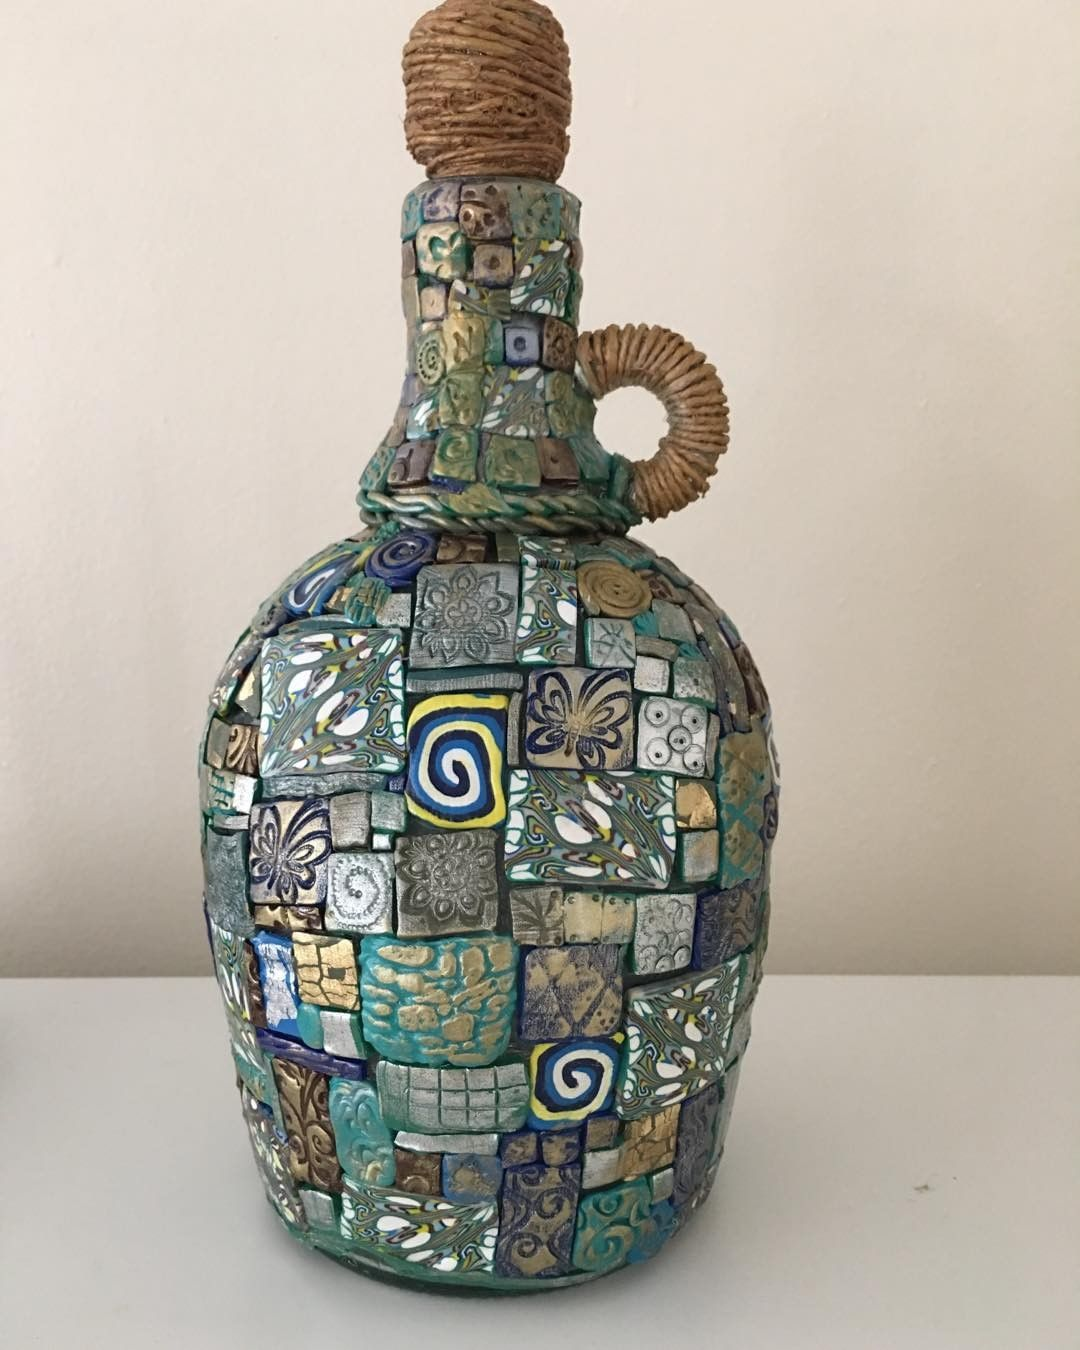 This decorated bottle is called